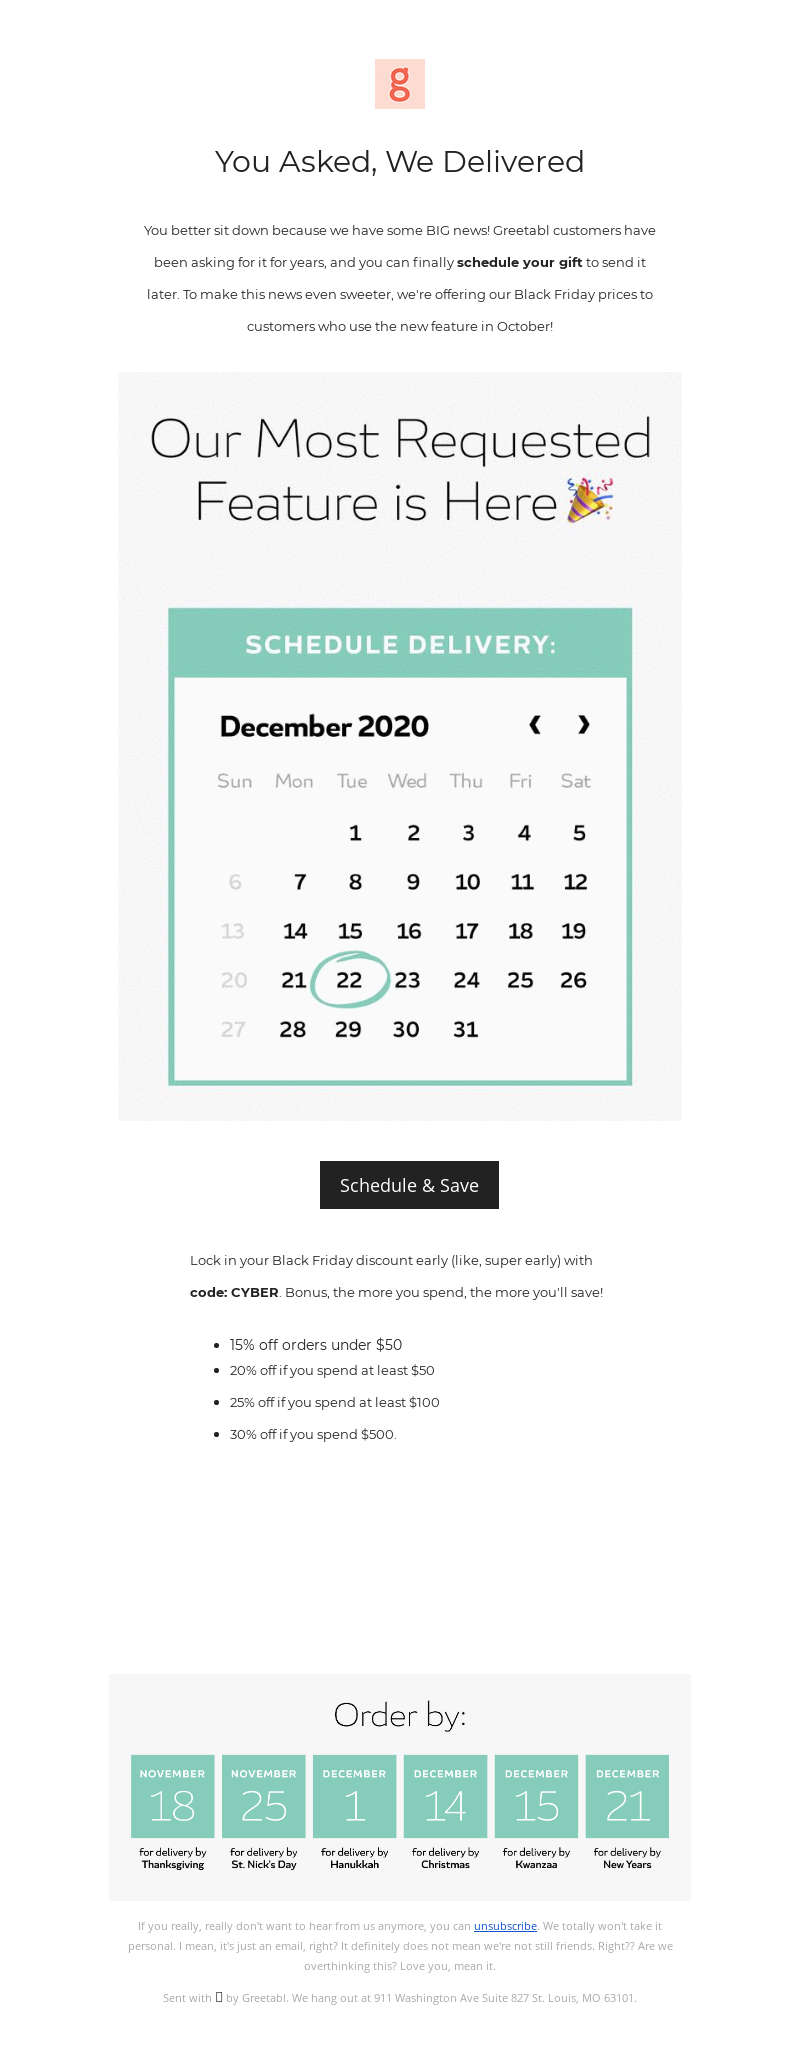 Greetabl - Want to Schedule Your Order? Now You Can! 🎉